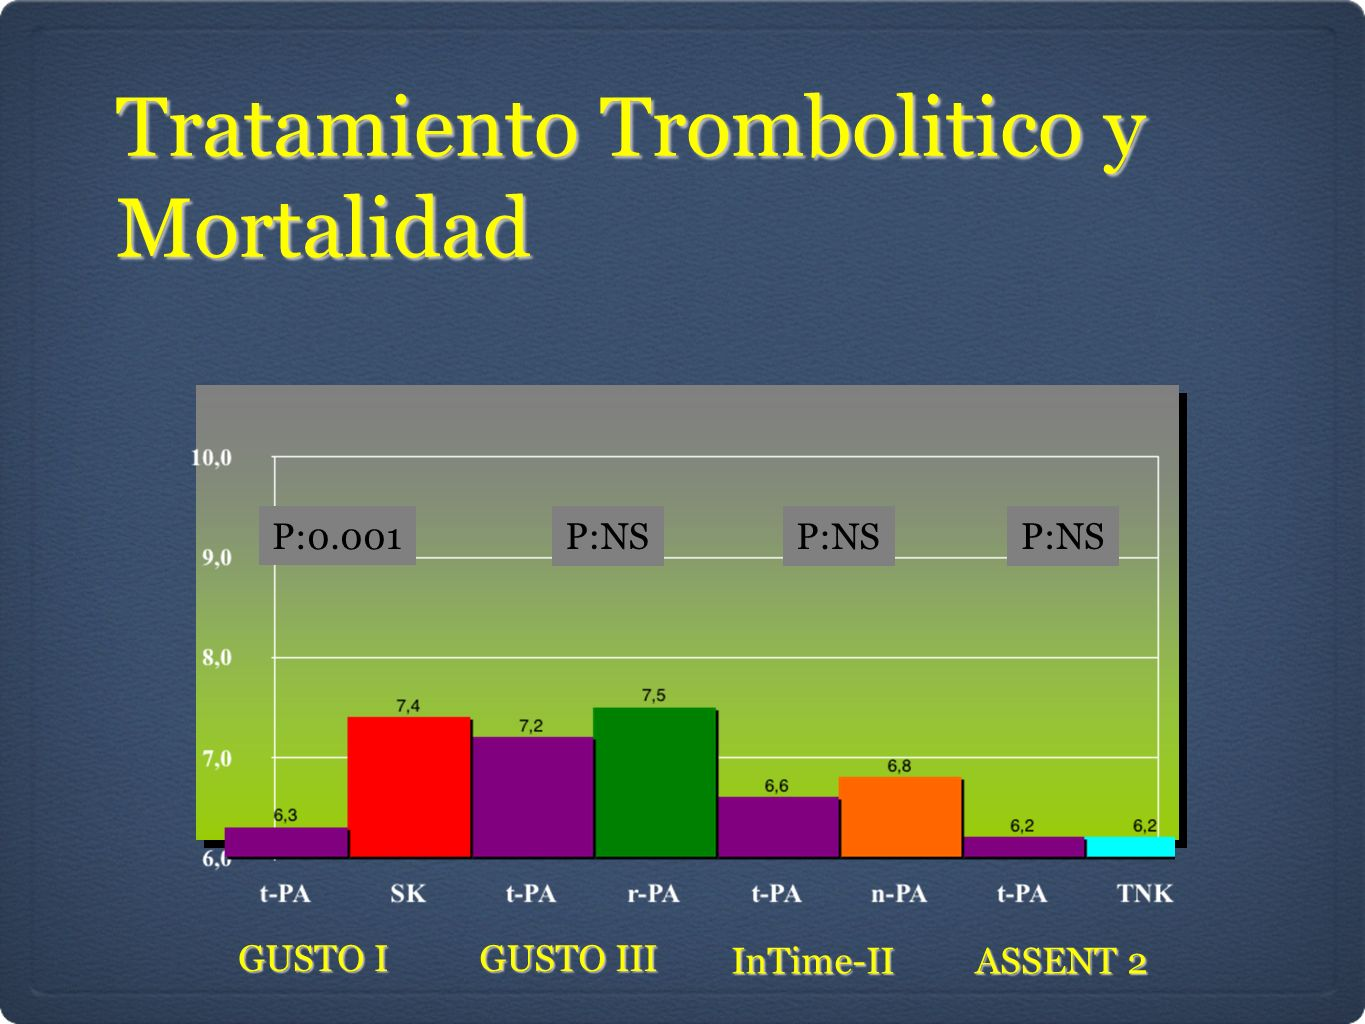 GUSTO I GUSTO III InTime-II ASSENT 2 P:0.001 P:NS Tratamiento Trombolitico y Mortalidad